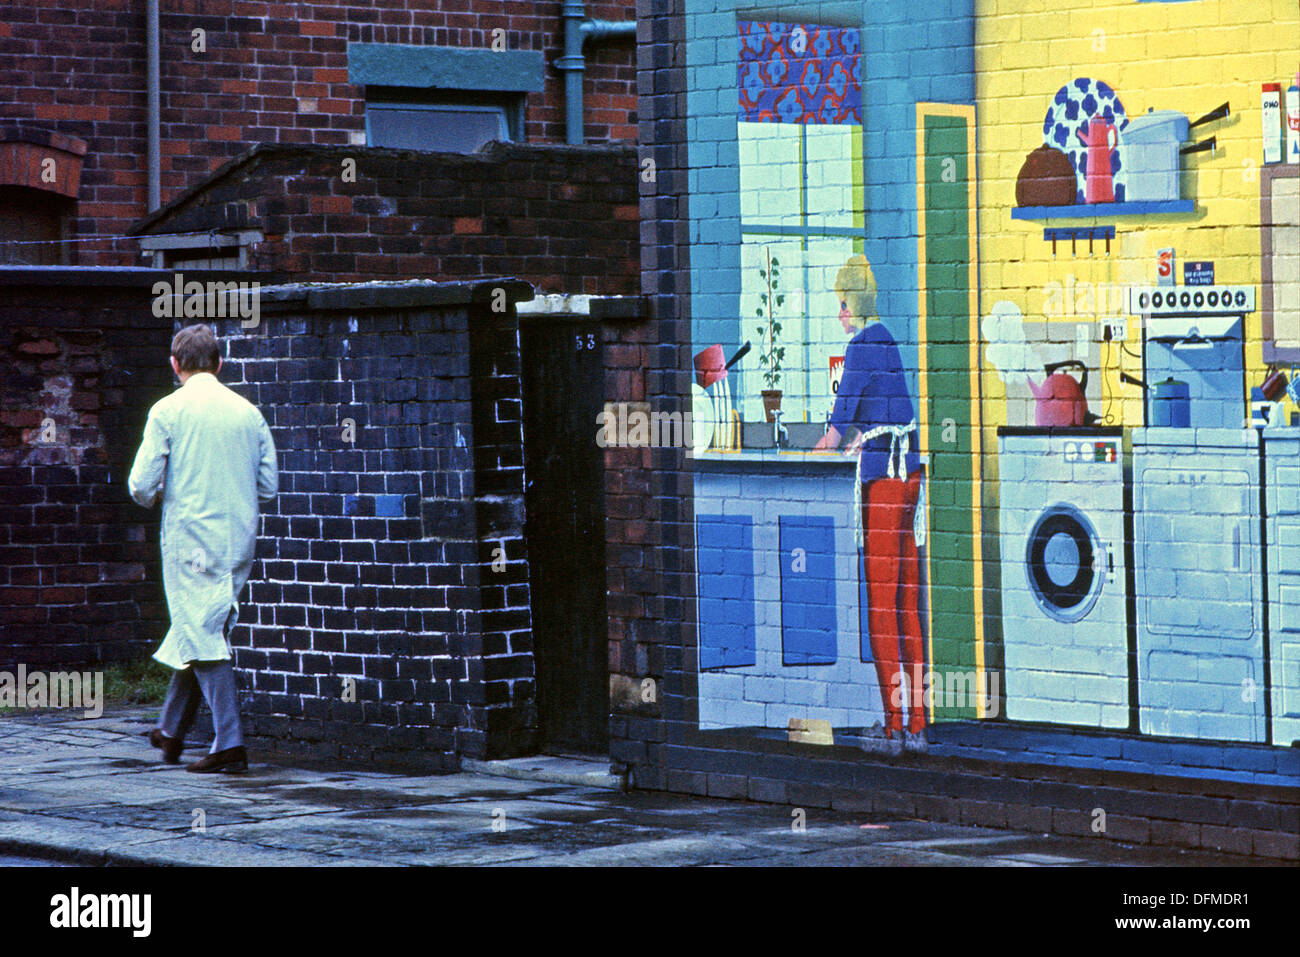 Man Walking Past Wall Mural INSIDE OUT HOUSE On The Gable End Of A Rochdale  House Lancashire UK 1975 KATHY DEWITT